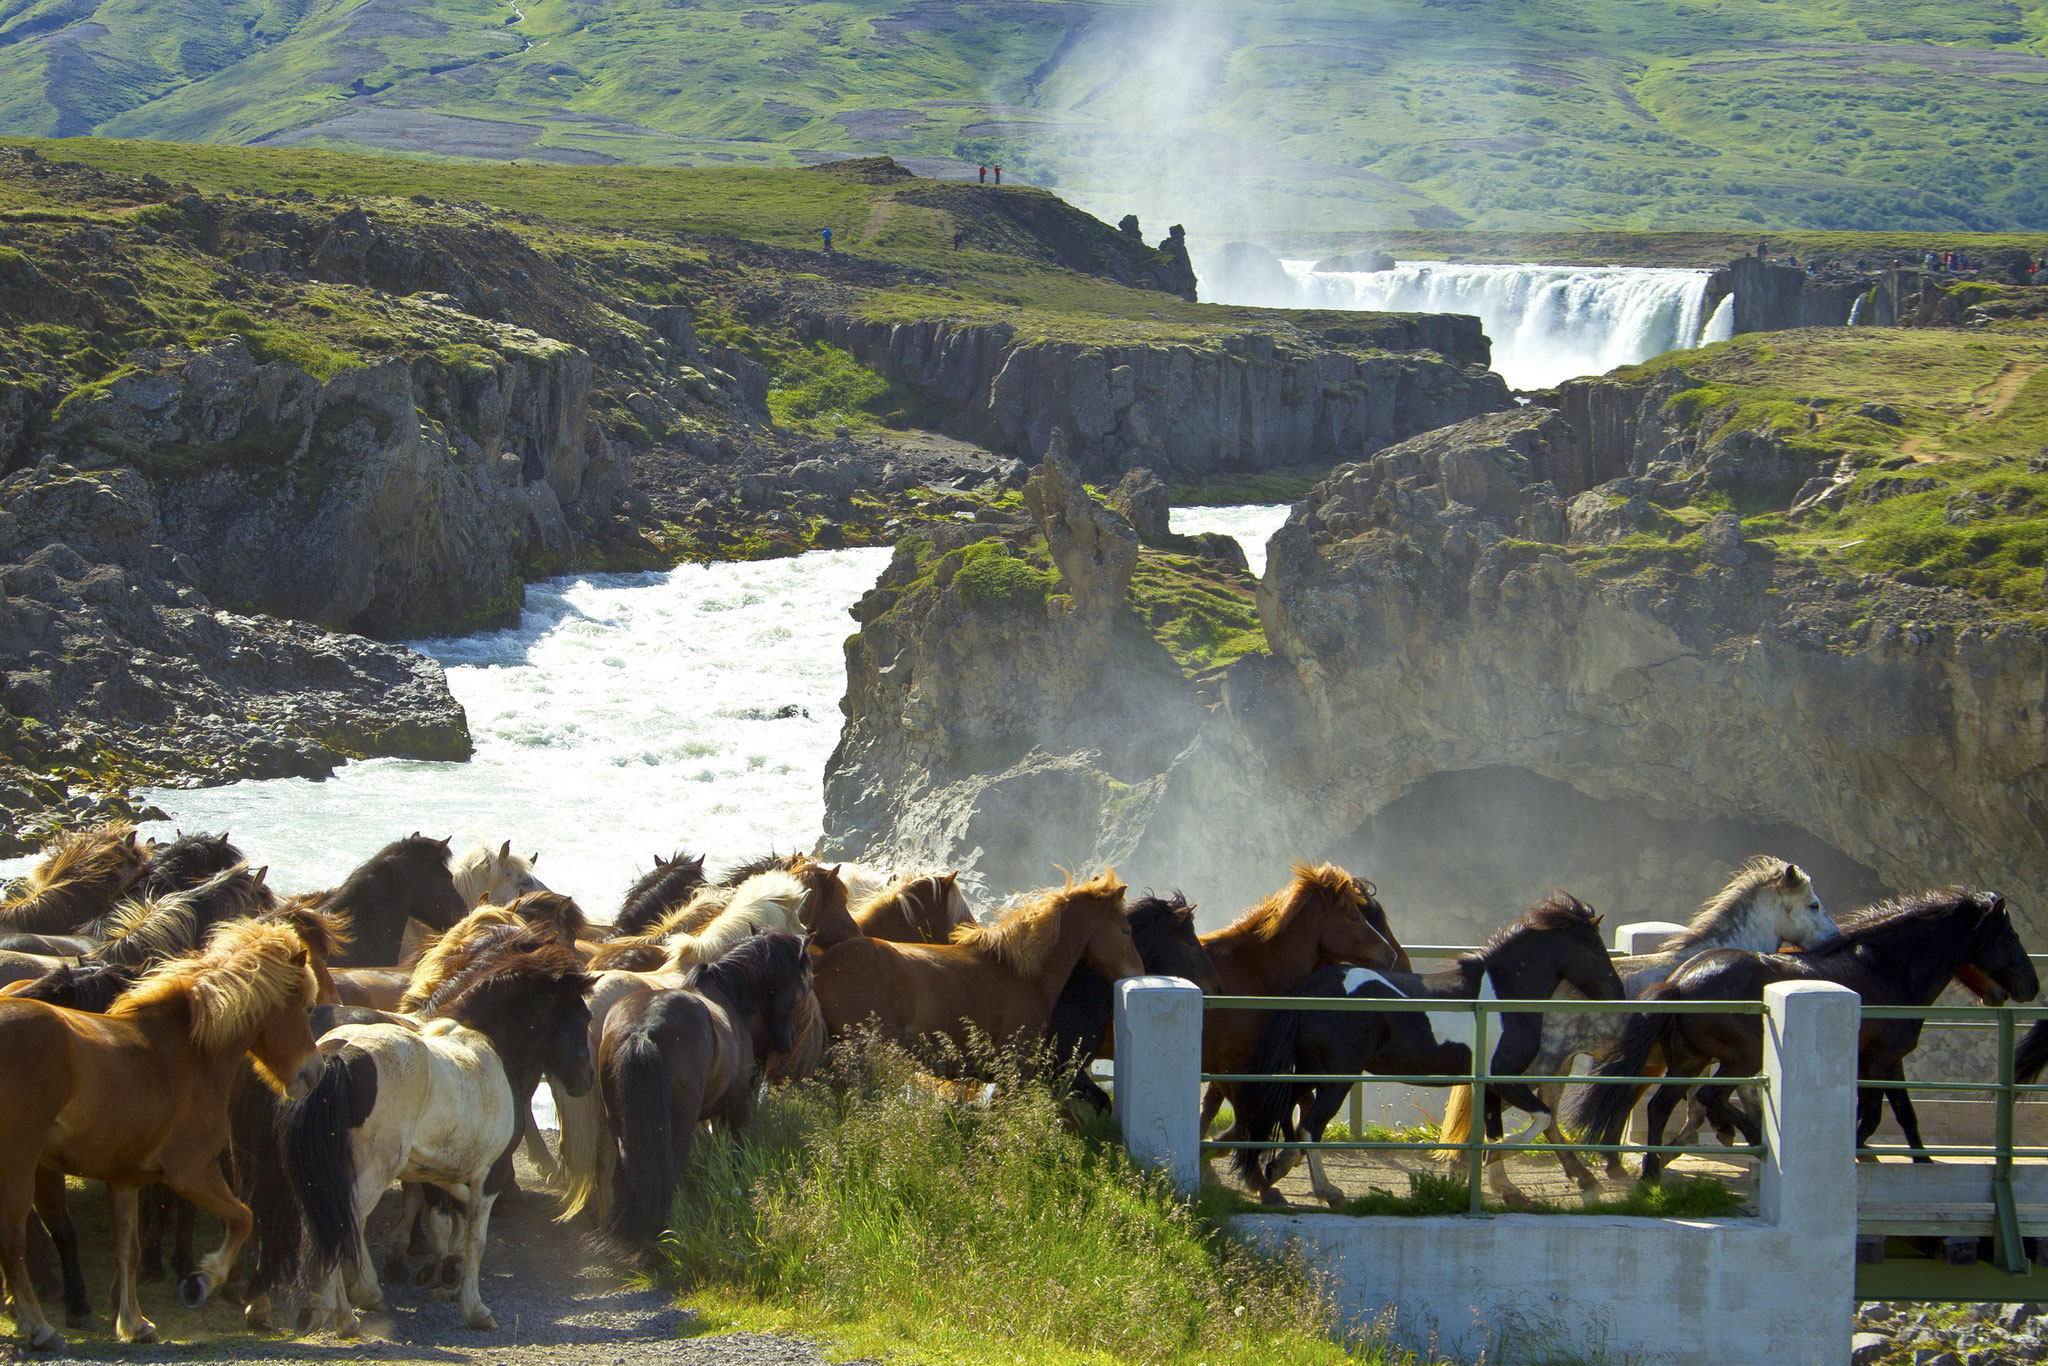 © Hans G. Lehmann | Iceland horses near the waterfall Godafoss, Iceland